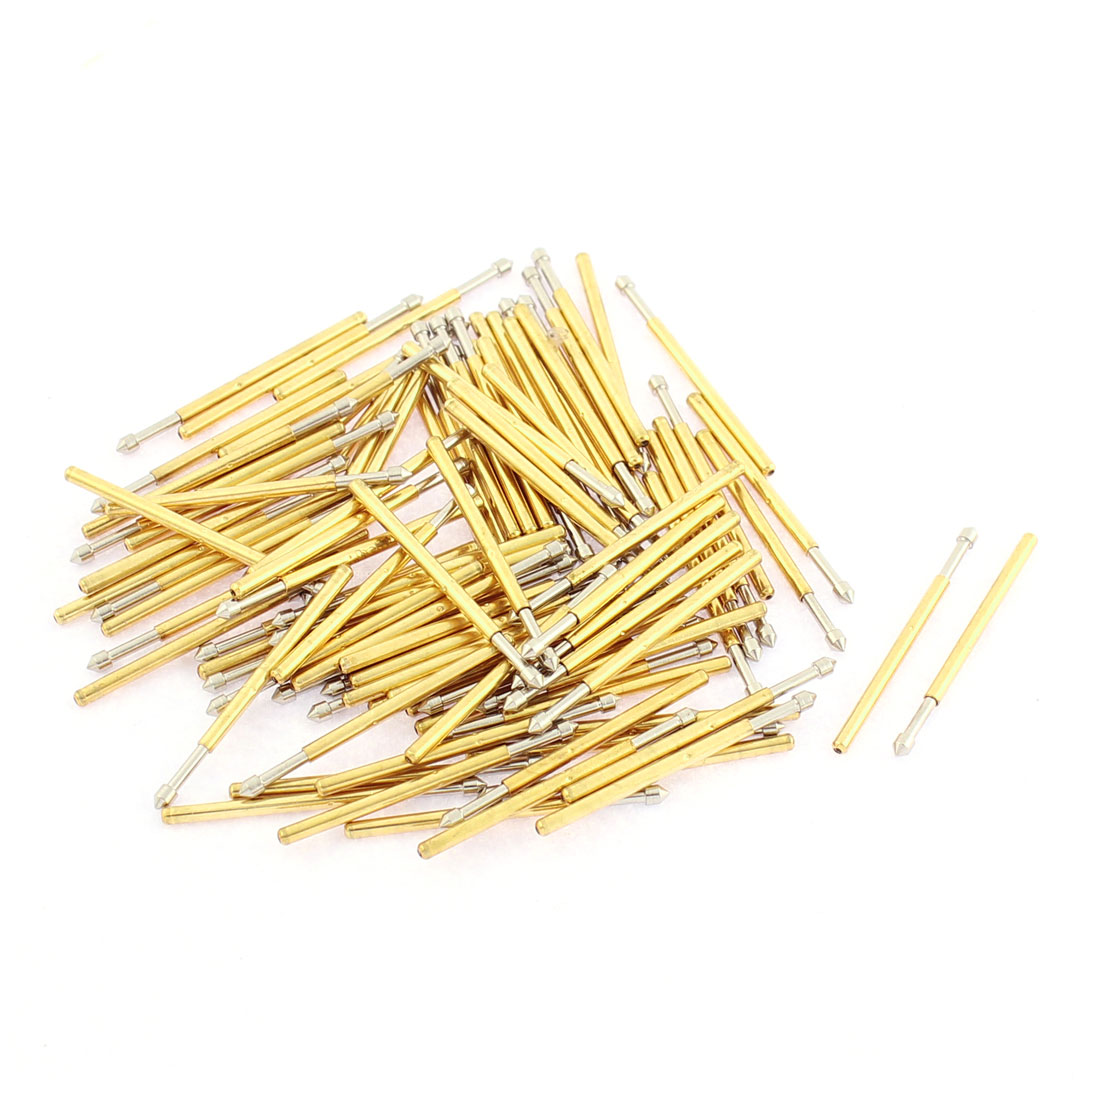 P160E 24mm Length 90 Degree Convex Tip Spring Loaded Test Probe Pin 100Pcs